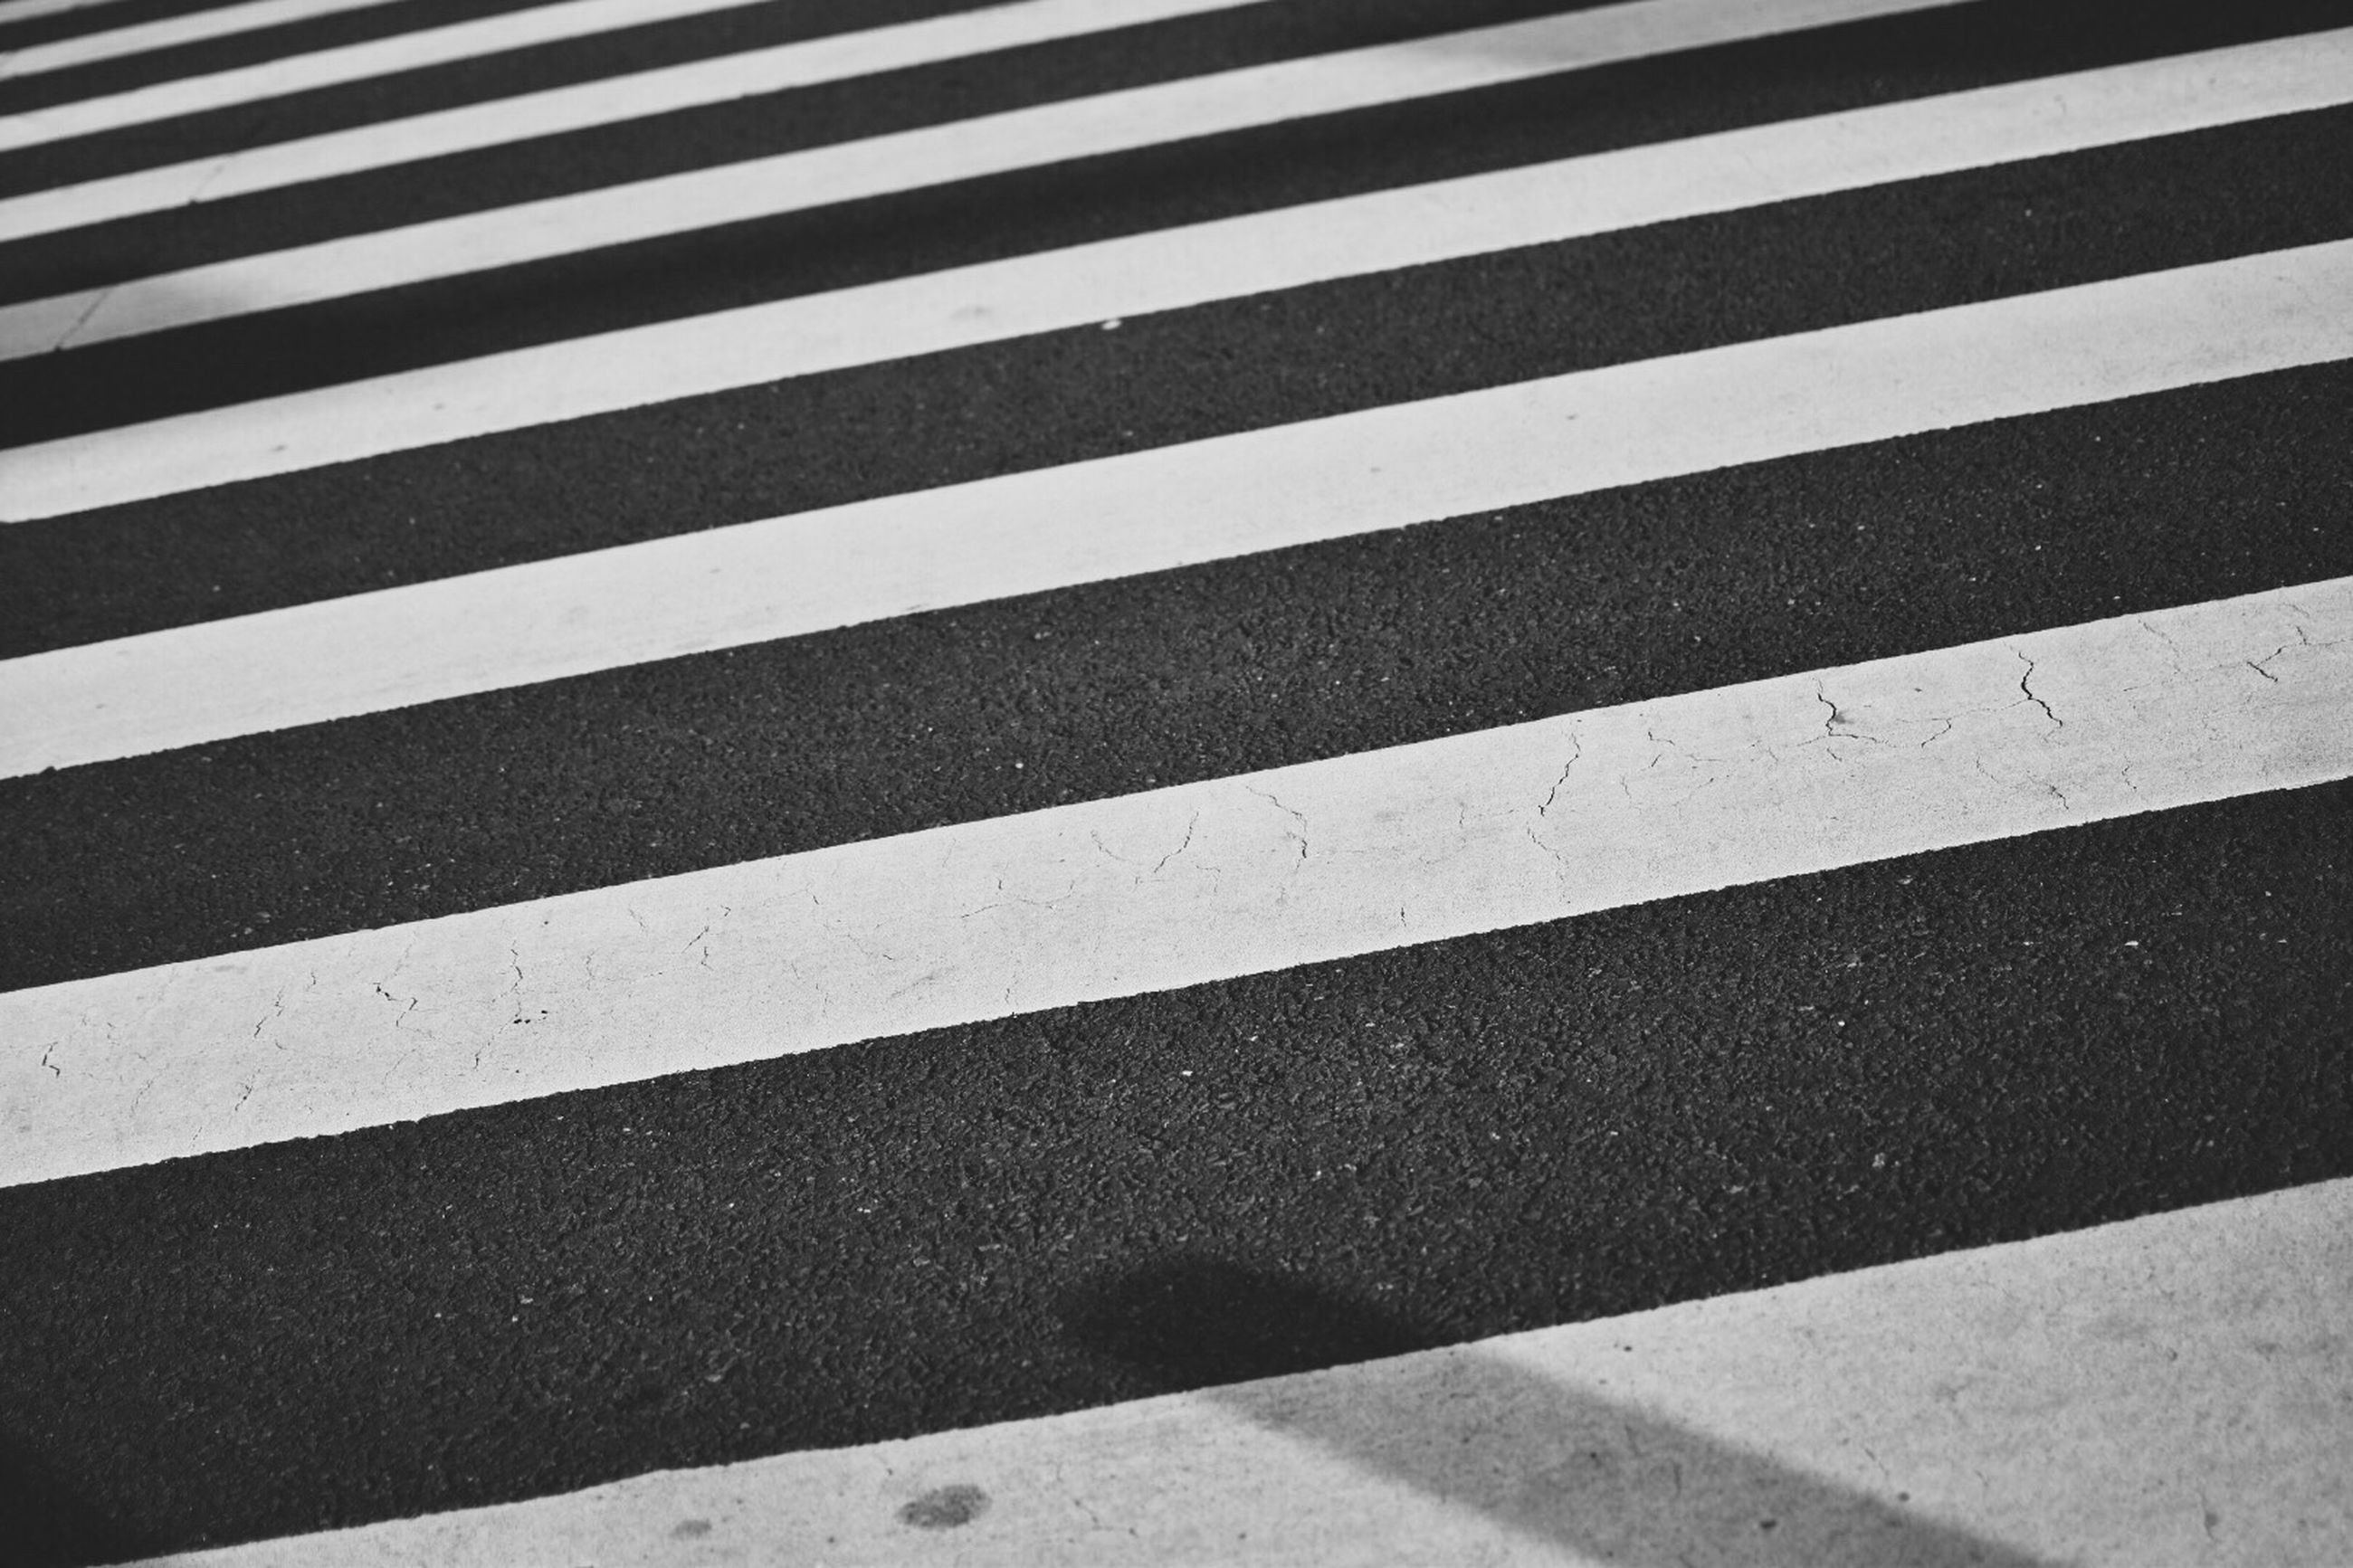 striped, full frame, backgrounds, road marking, high angle view, pattern, architecture, repetition, blinds, no people, day, outdoors, line, parallel, vibrant color